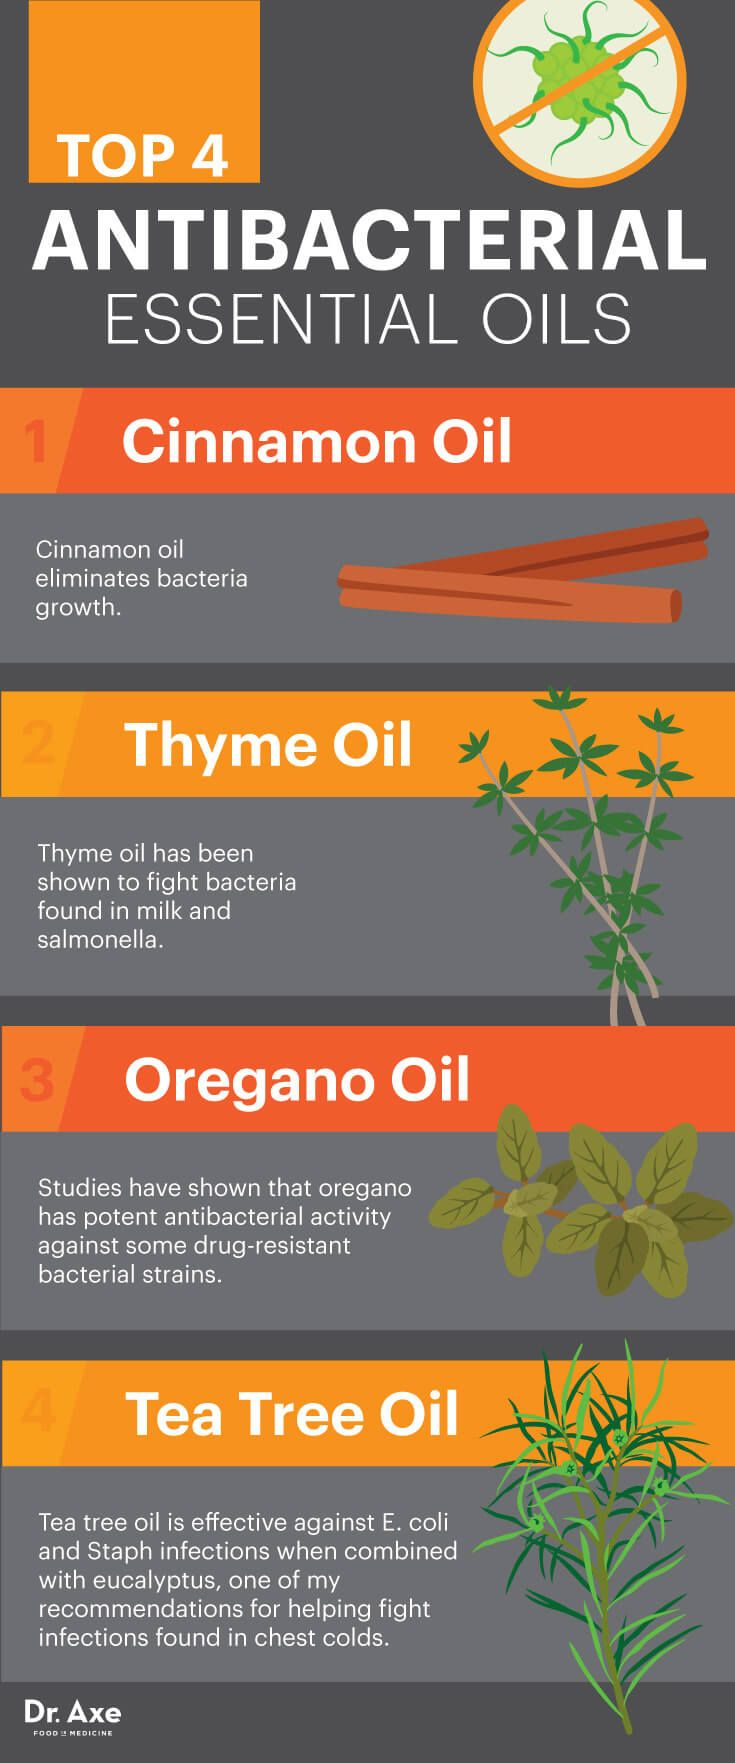 Top four antibacterial essential oils - Dr. Axe http://www.draxe.com #health #holistic #natural